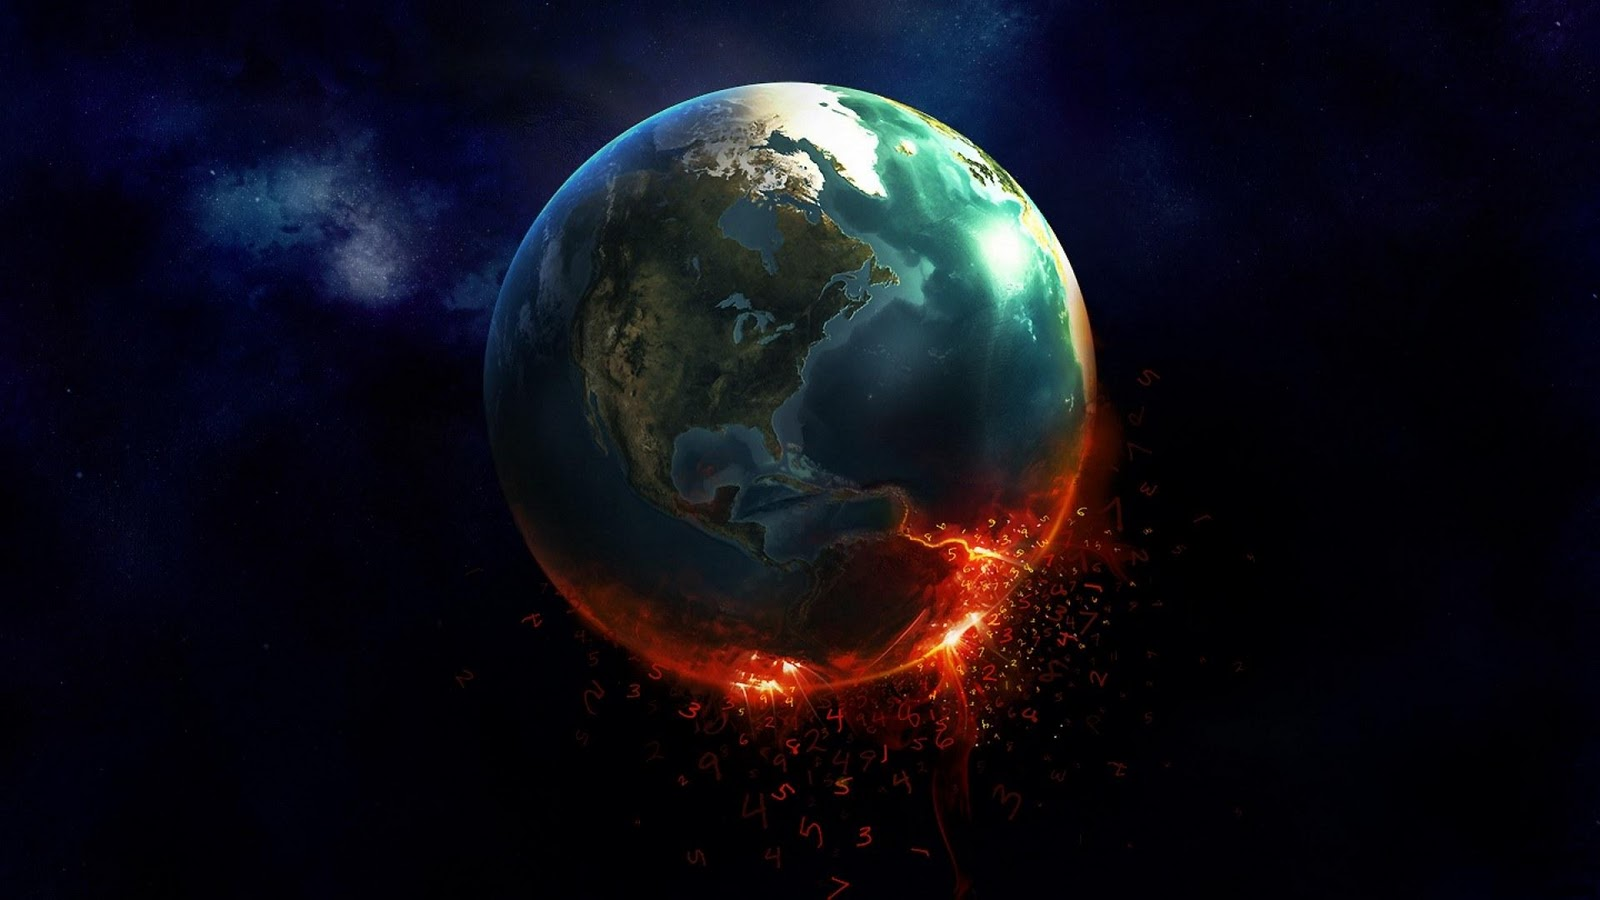 Hd wallpaper 2012 end of world wall2u hd wallpaper 2012 end of world voltagebd Images